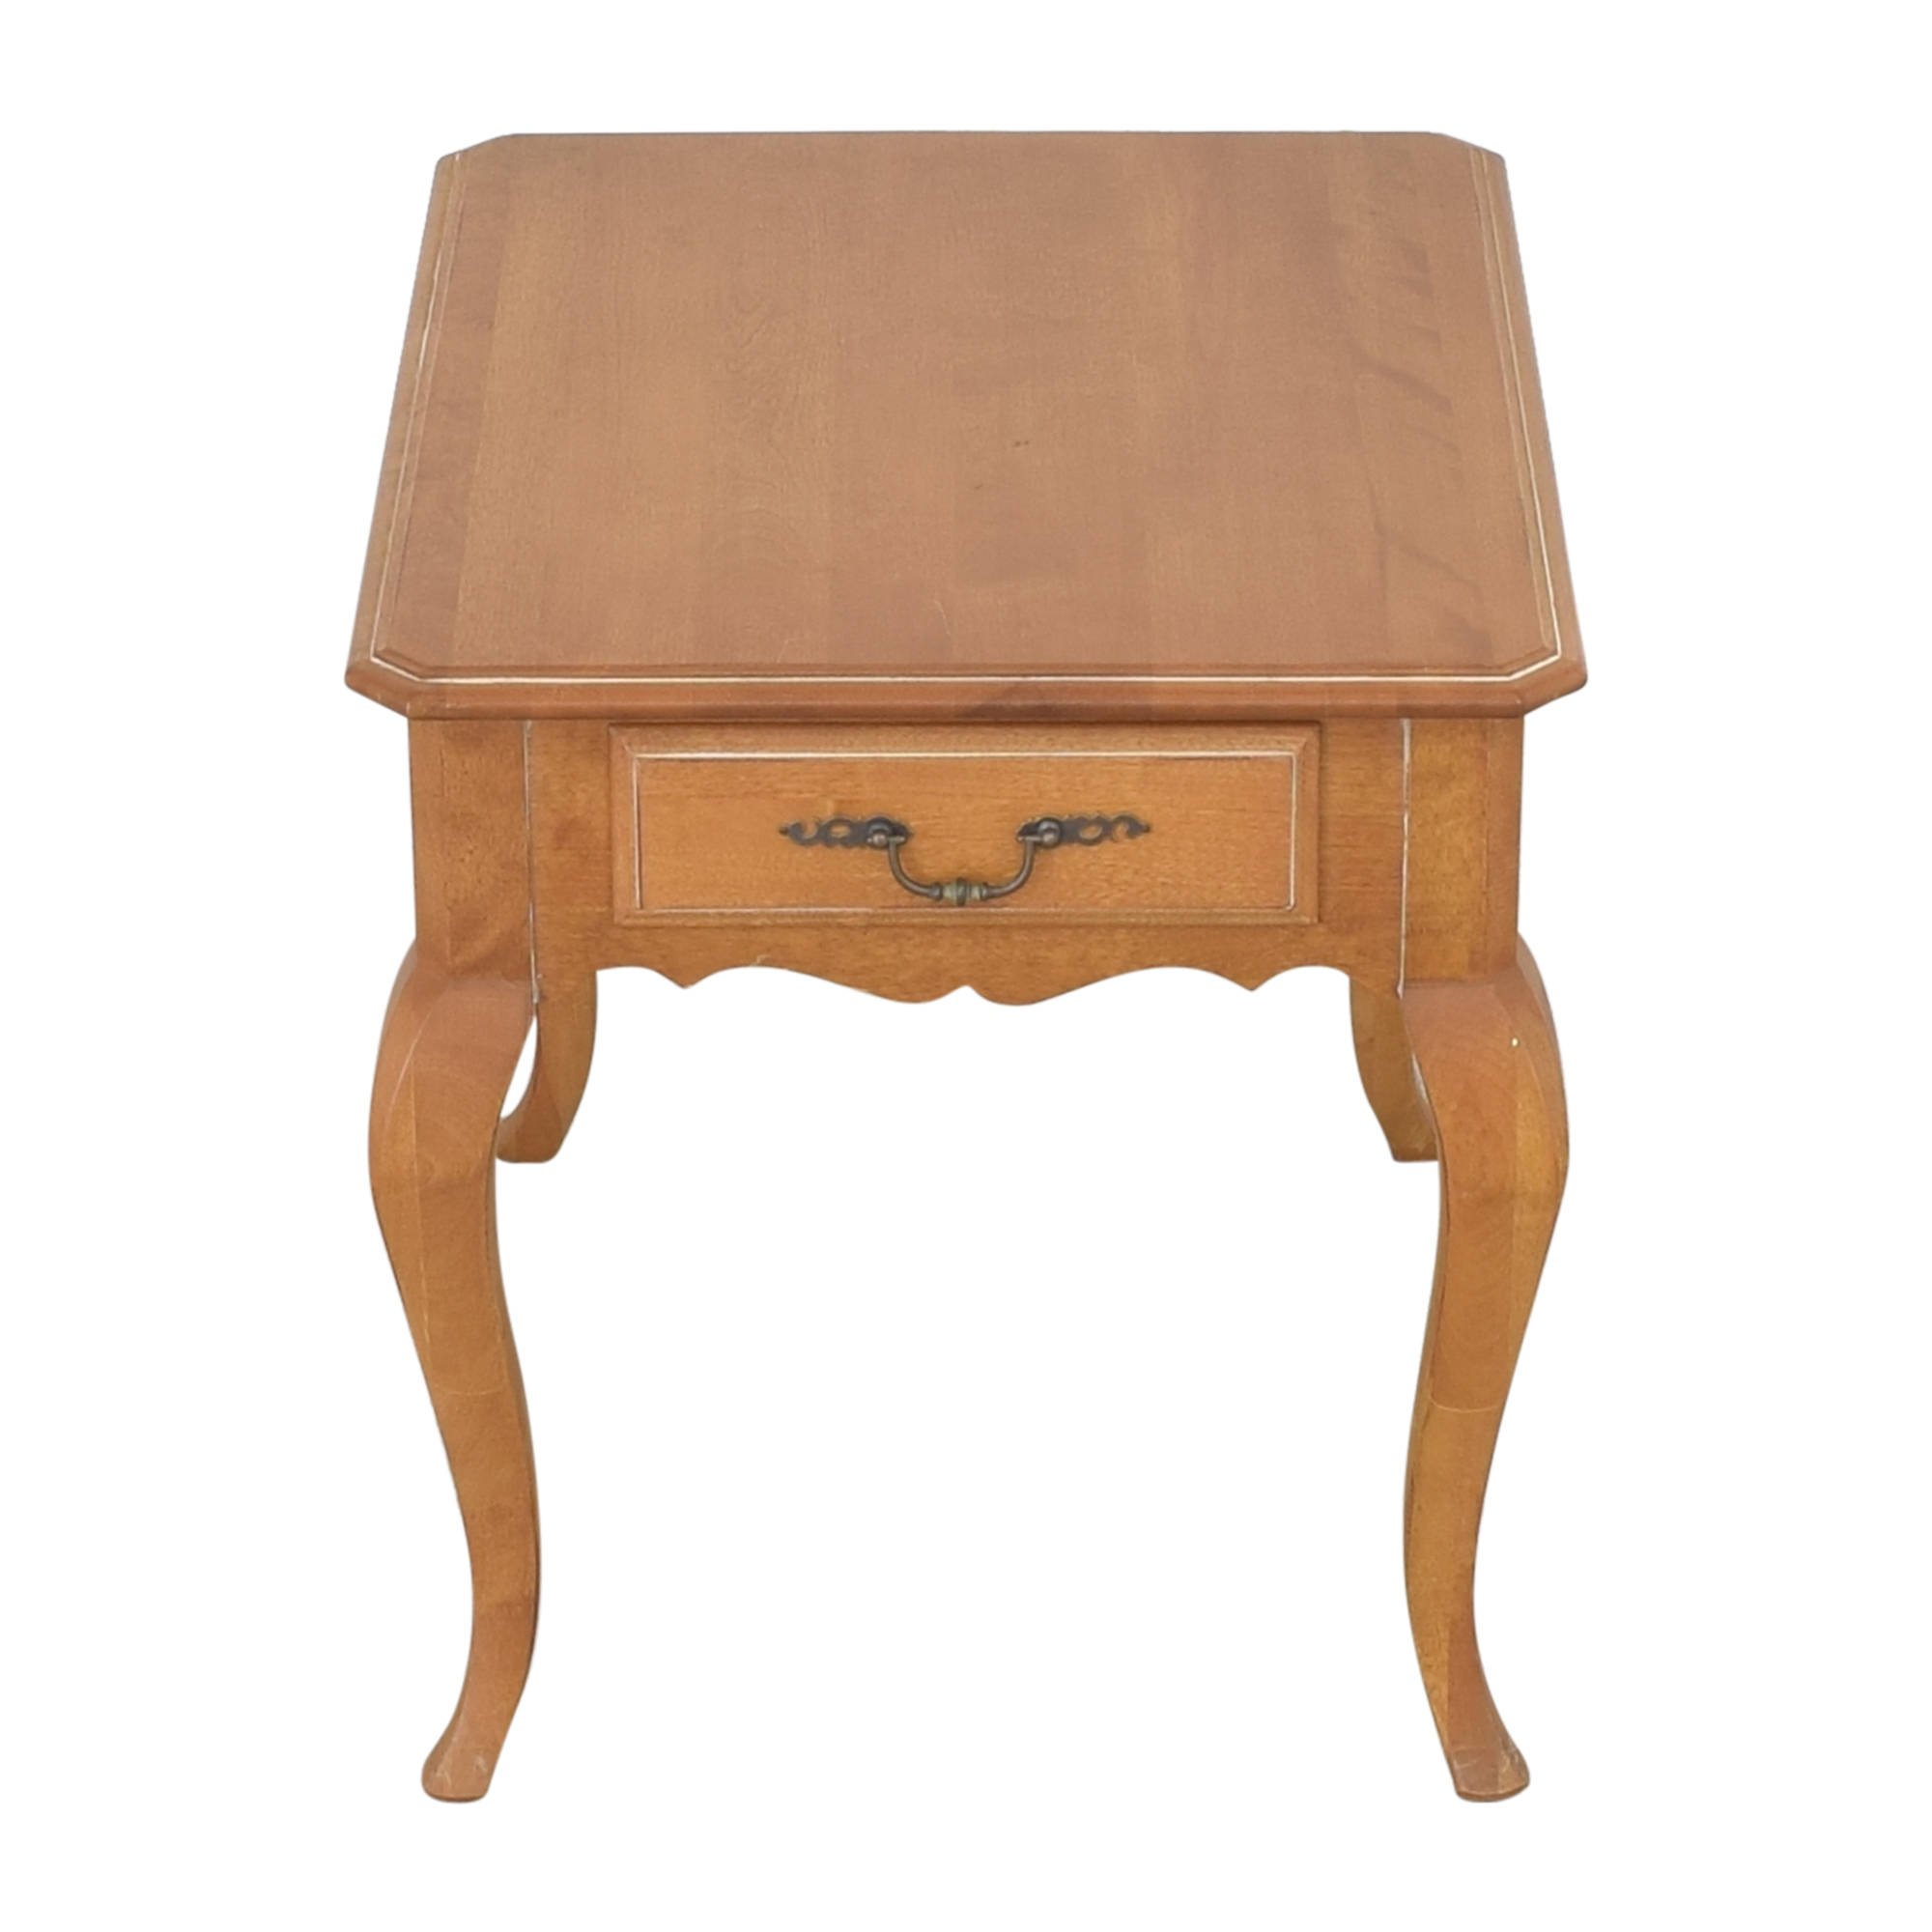 Ethan Allen Ethan Allen Country French Side Table